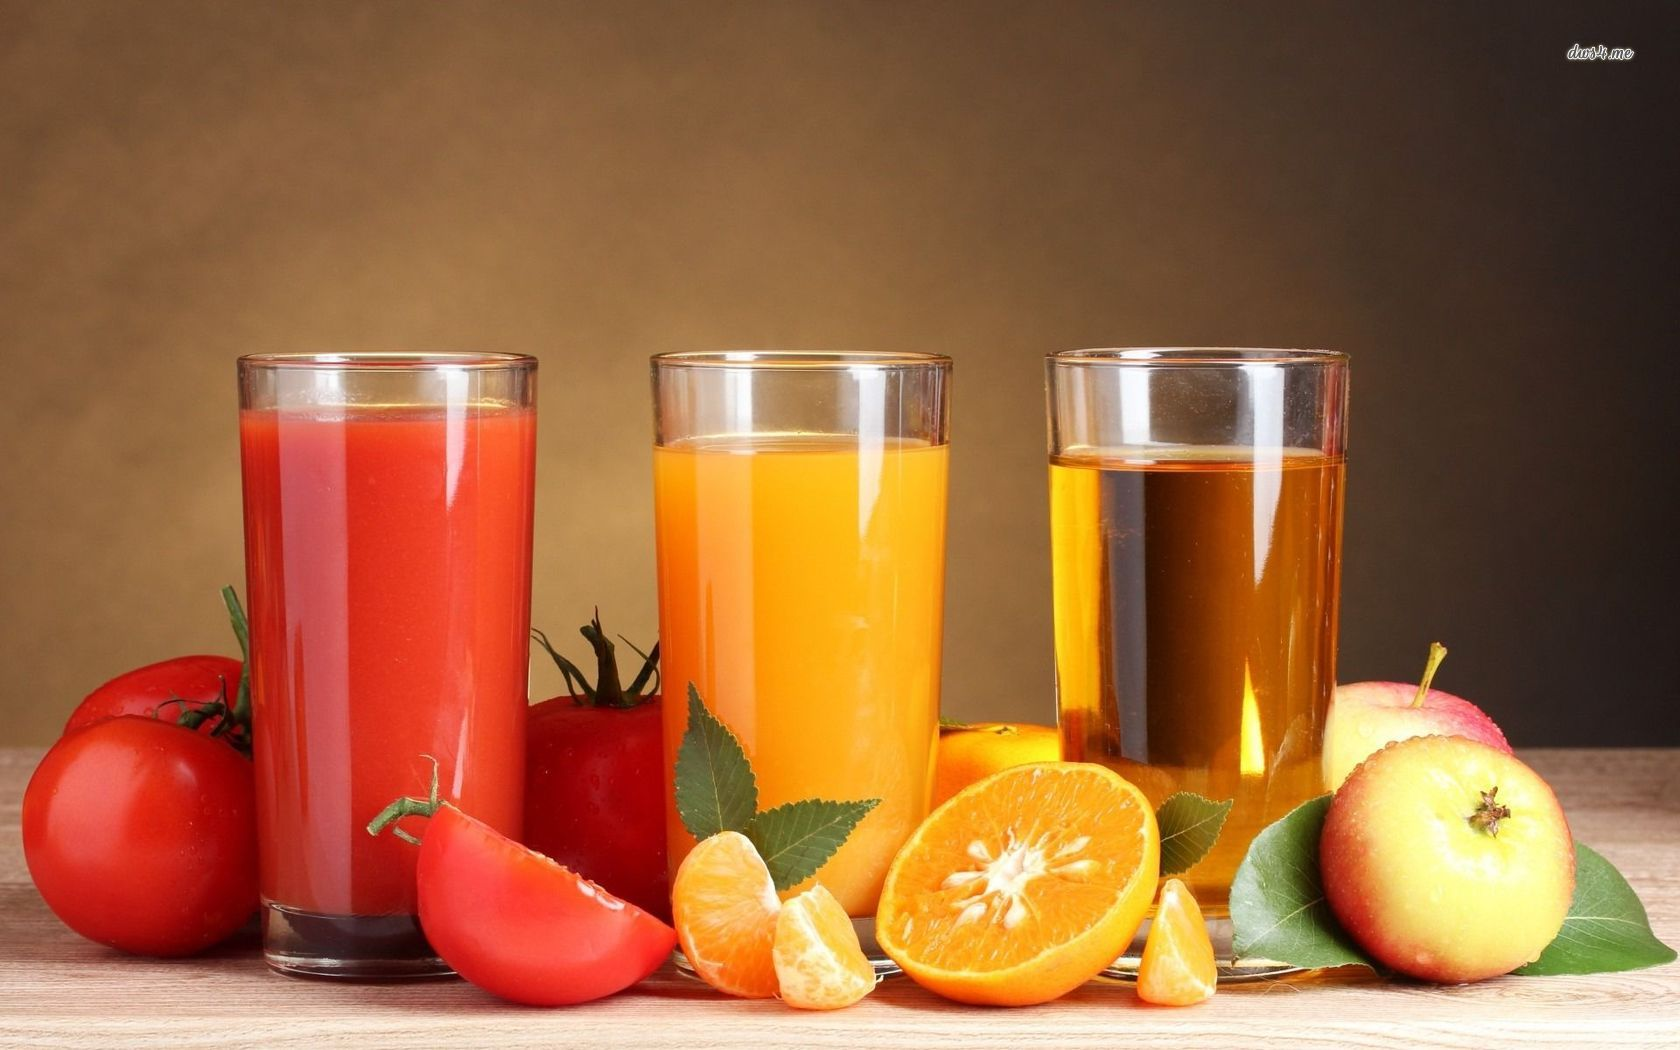 Juices wallpaper   Photography wallpapers   25801 1680x1050